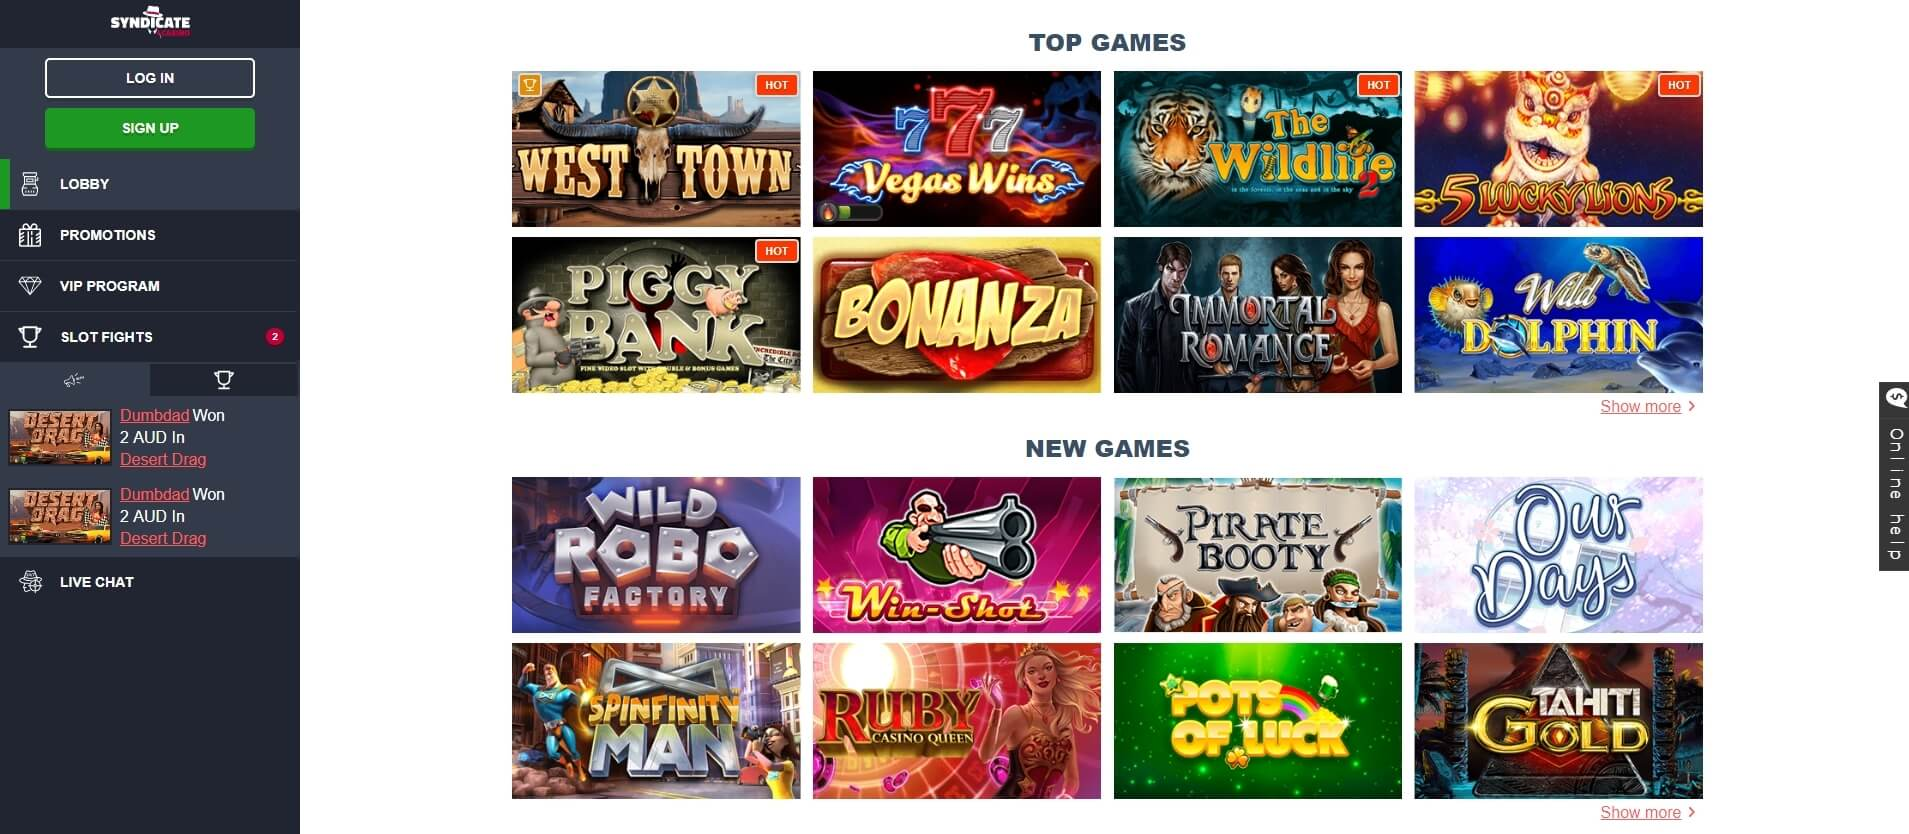 syndicate casino slots